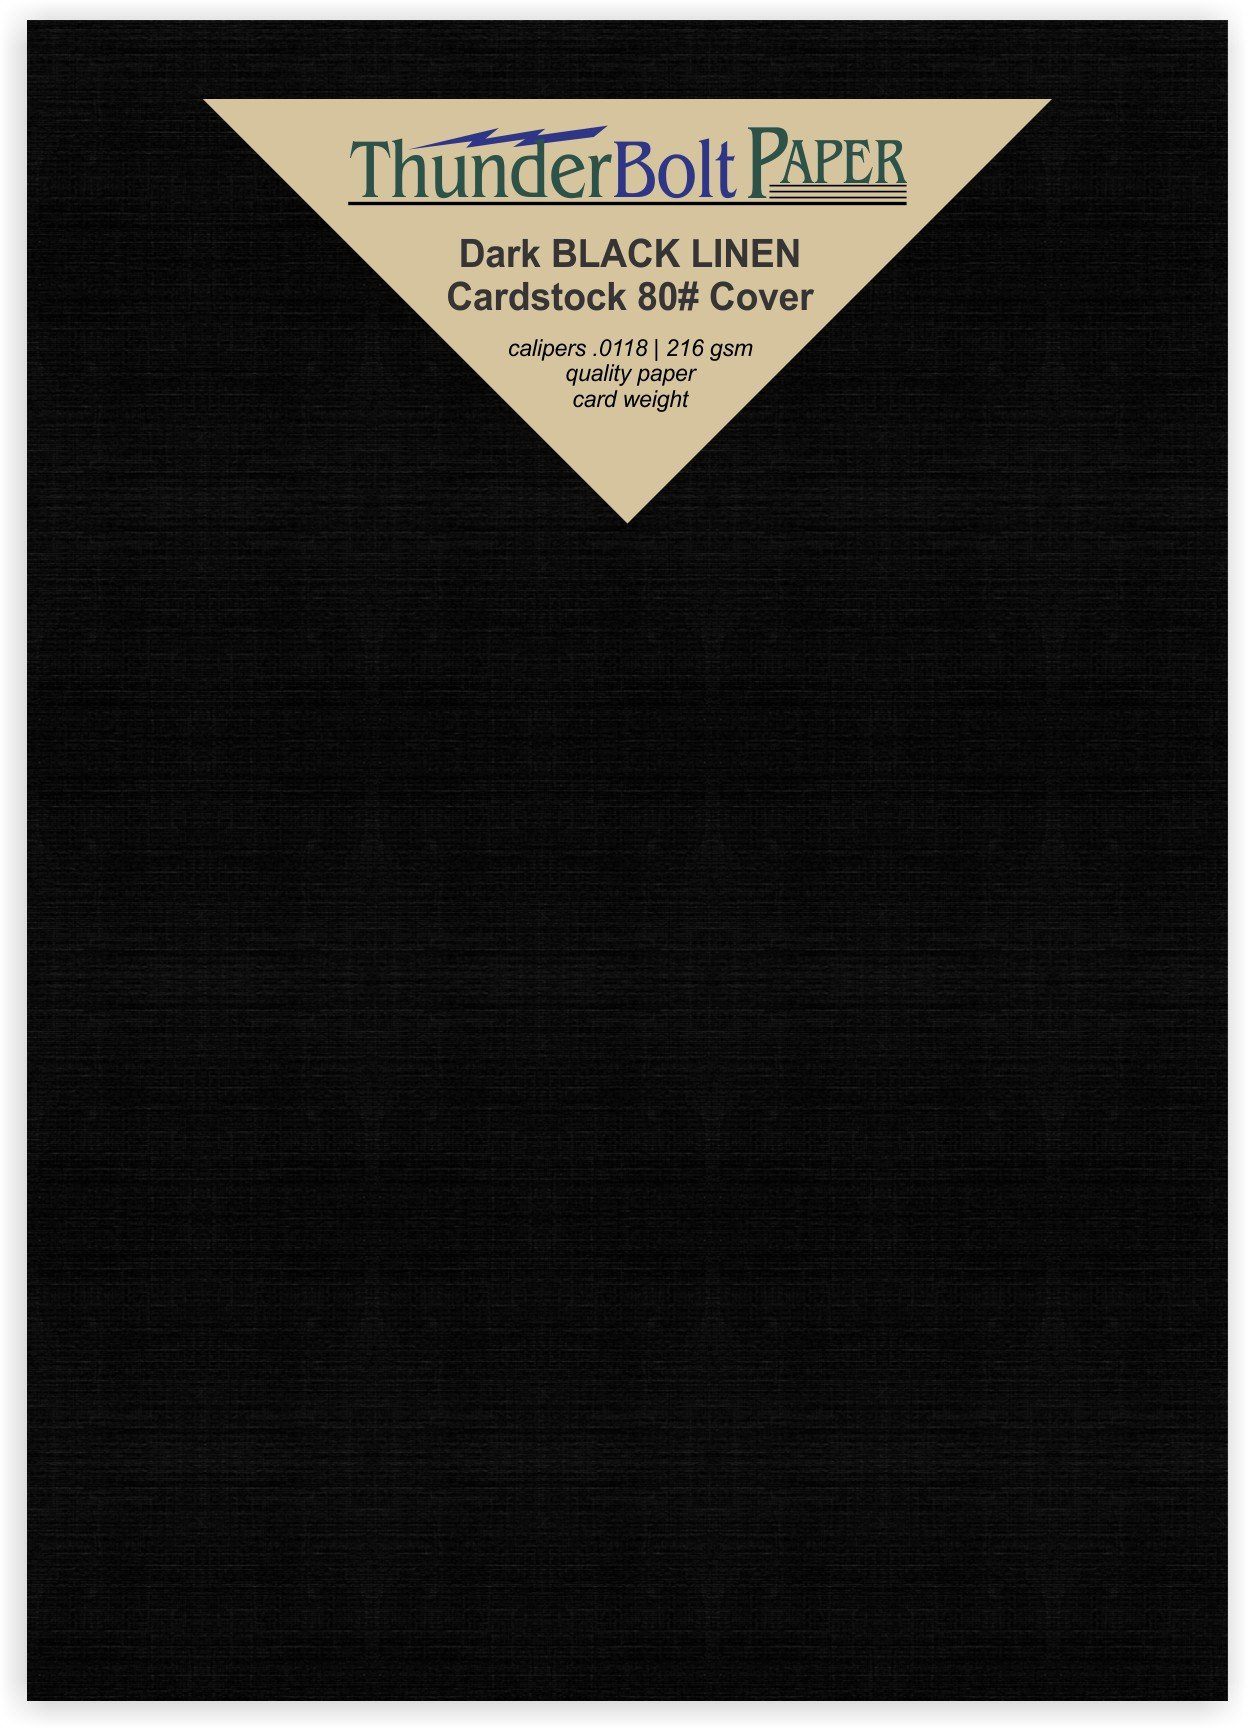 100 Black Linen 80# Cover Paper Sheets -5.5'' X 8.5'' (5.5X8.5 Inches) Half Letter | Statement Size - Card Weight - Deep Dye, Fine Linen Textured Finish - Quality Cardstock